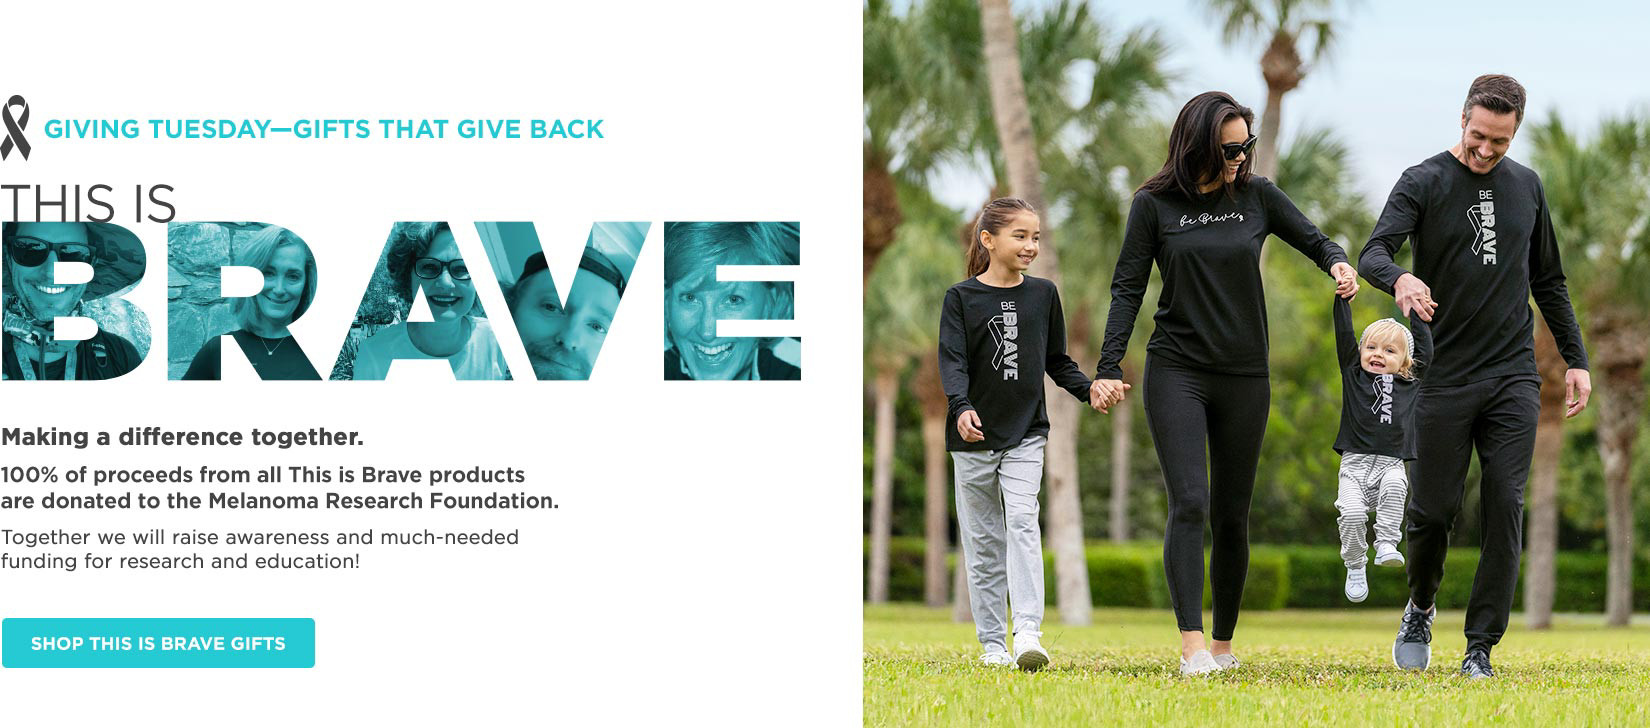 Giving Tuesday - Gifts that give back. THIS IS BRAVE. Making a difference together. 100% of proceeds from all This is Brave products are donated to the Melanoma Research Foundation. Shop This is Brave Gifts